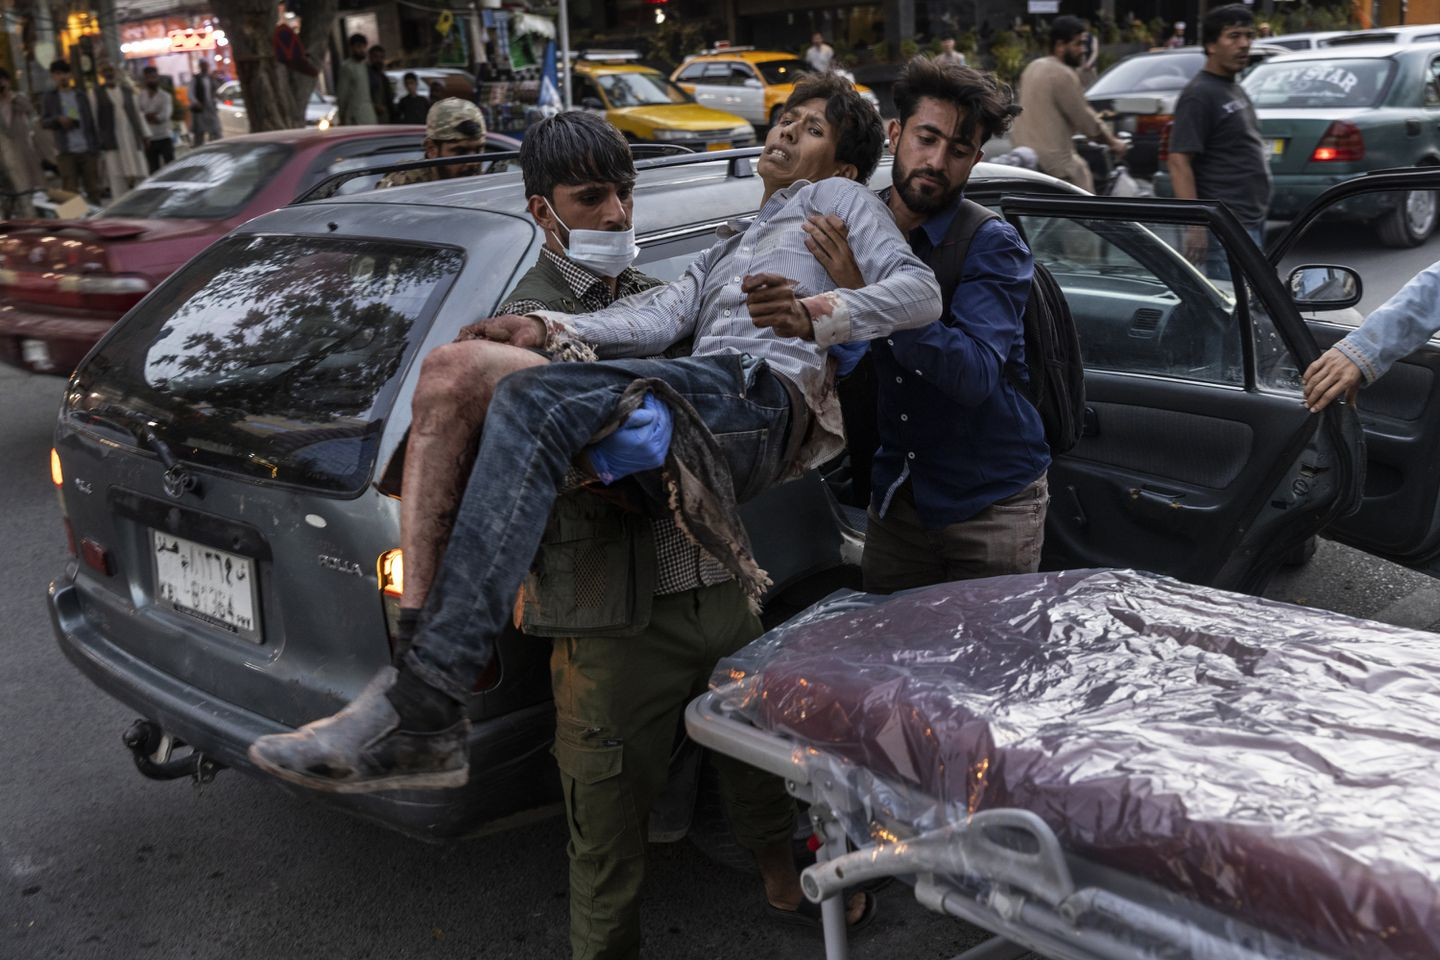 A person wounded in a bomb blast outside the Kabul airport in Afghanistan on Thursday arrived at a hospital in Kabul